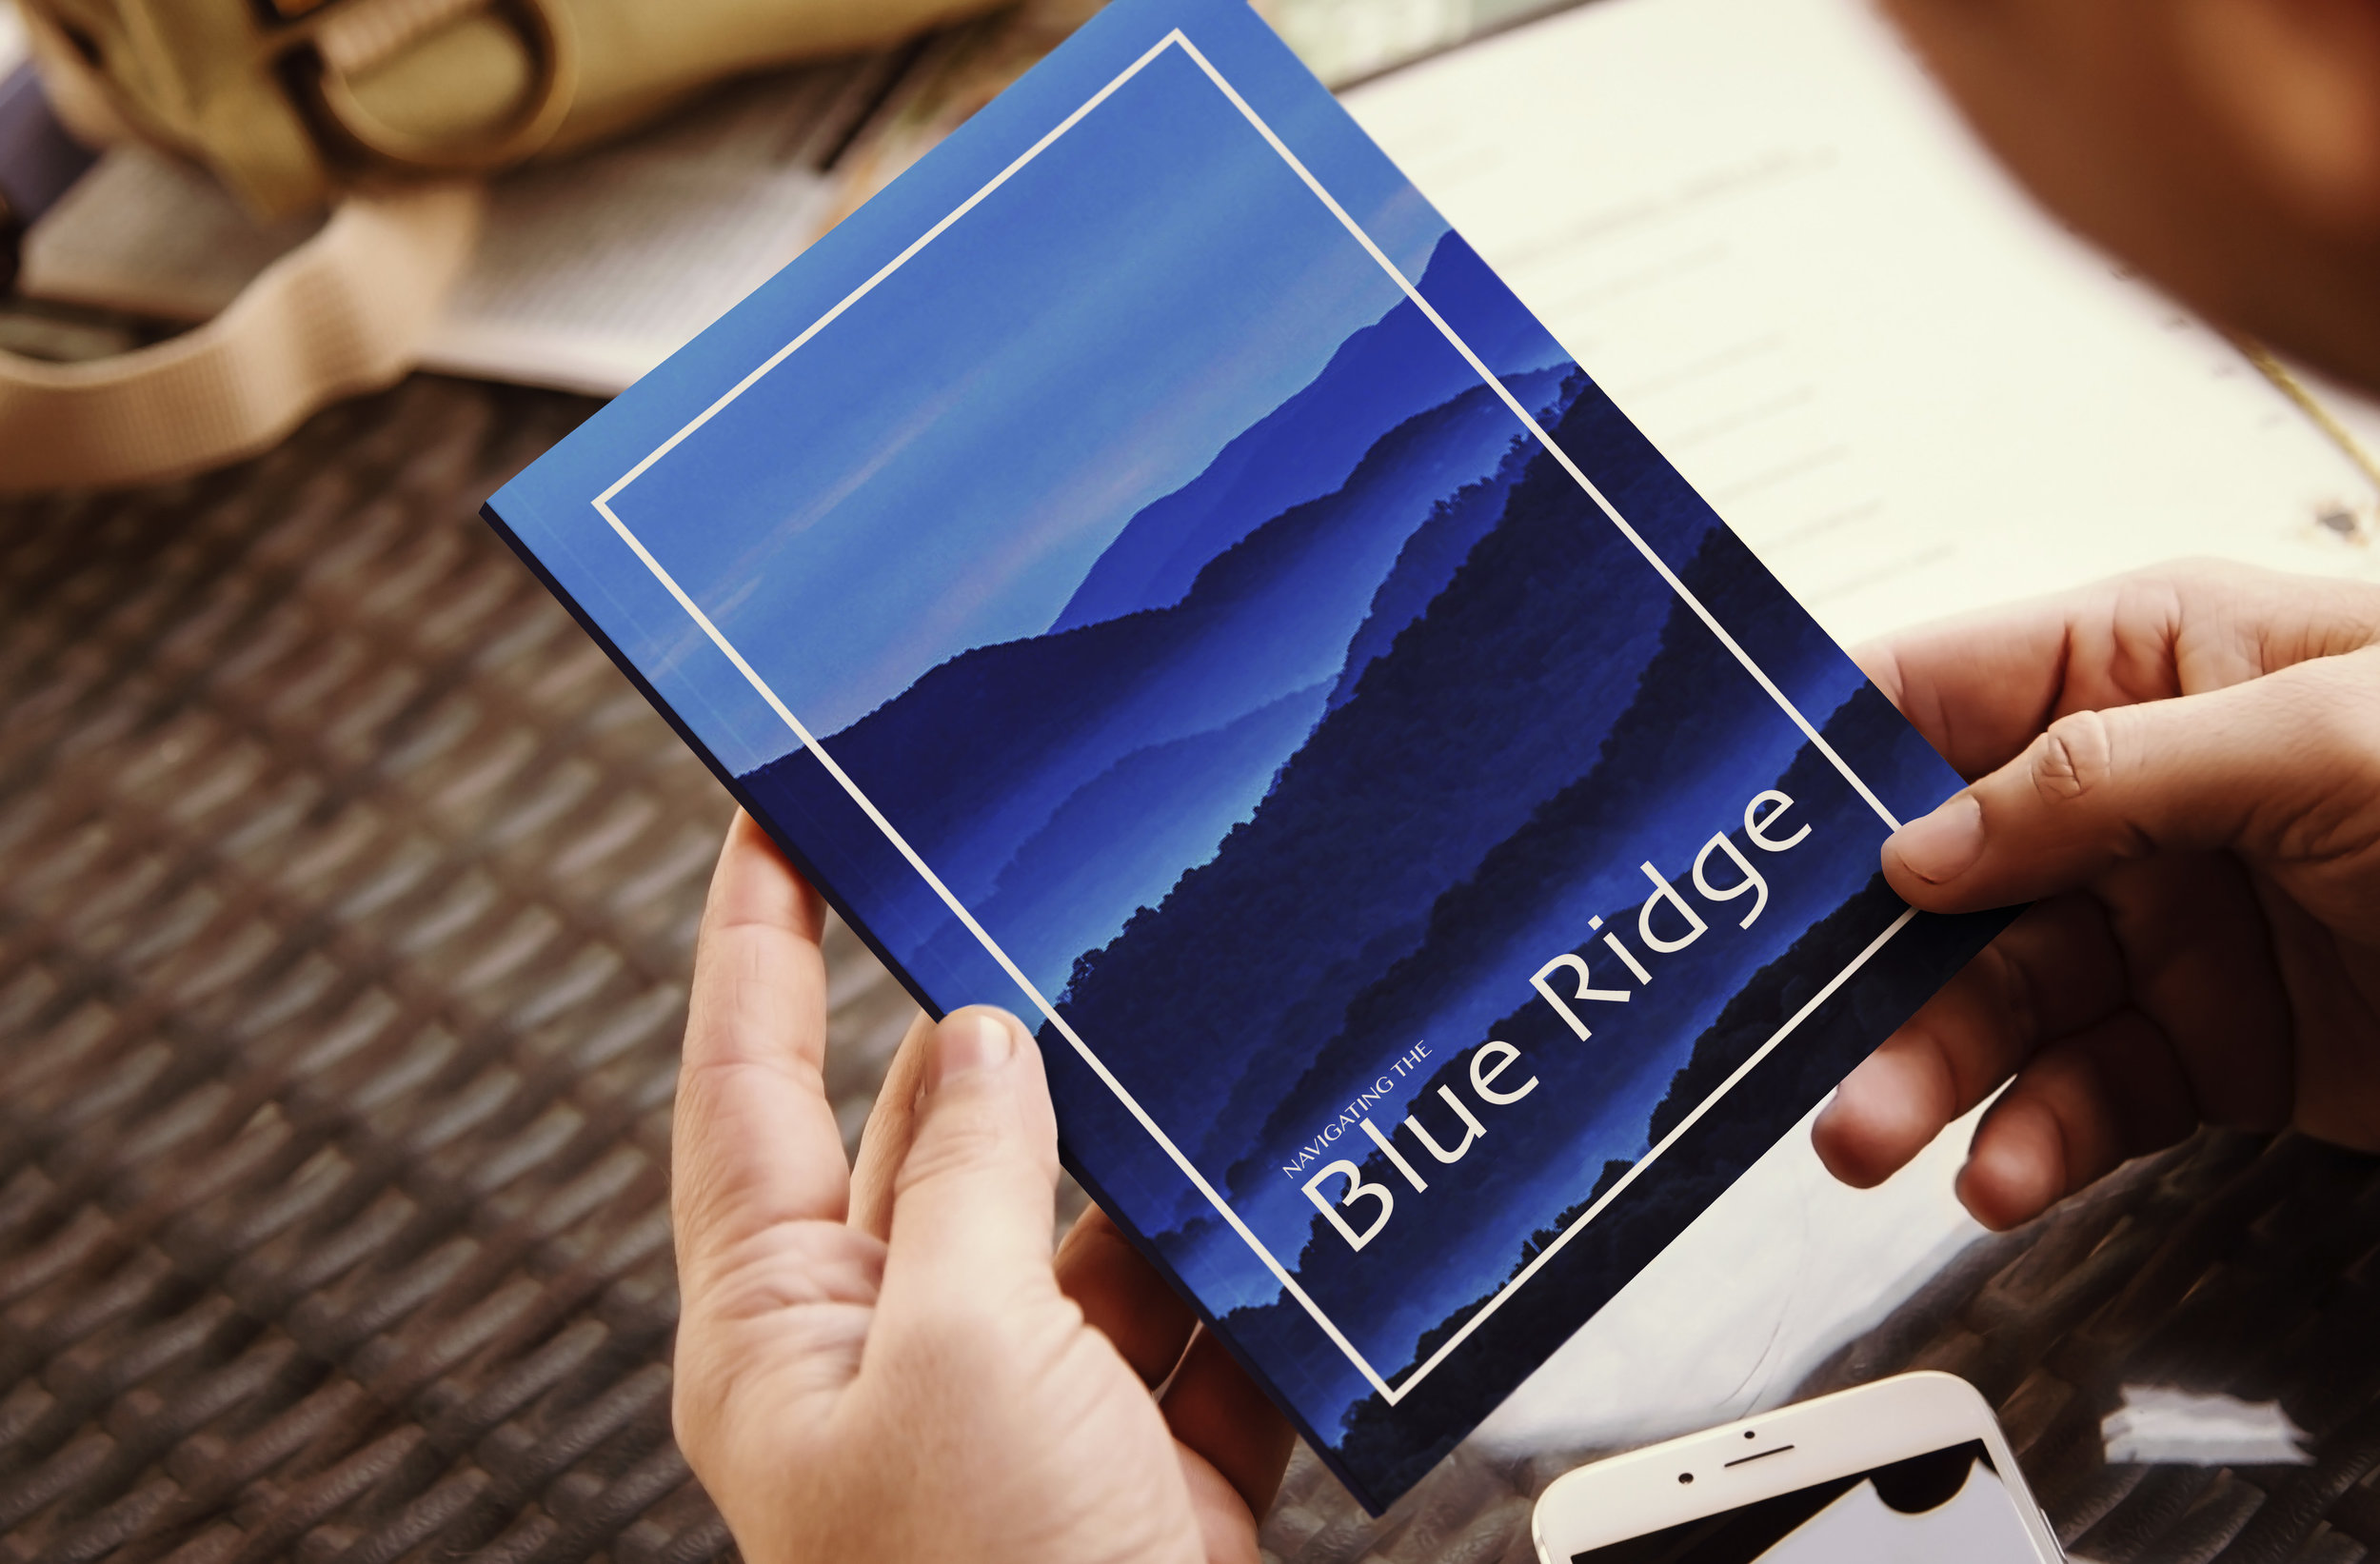 Blue Ridge Mountains Visitors' Guide. Art Direction and Layout Design. Photography from Adobe Stock.